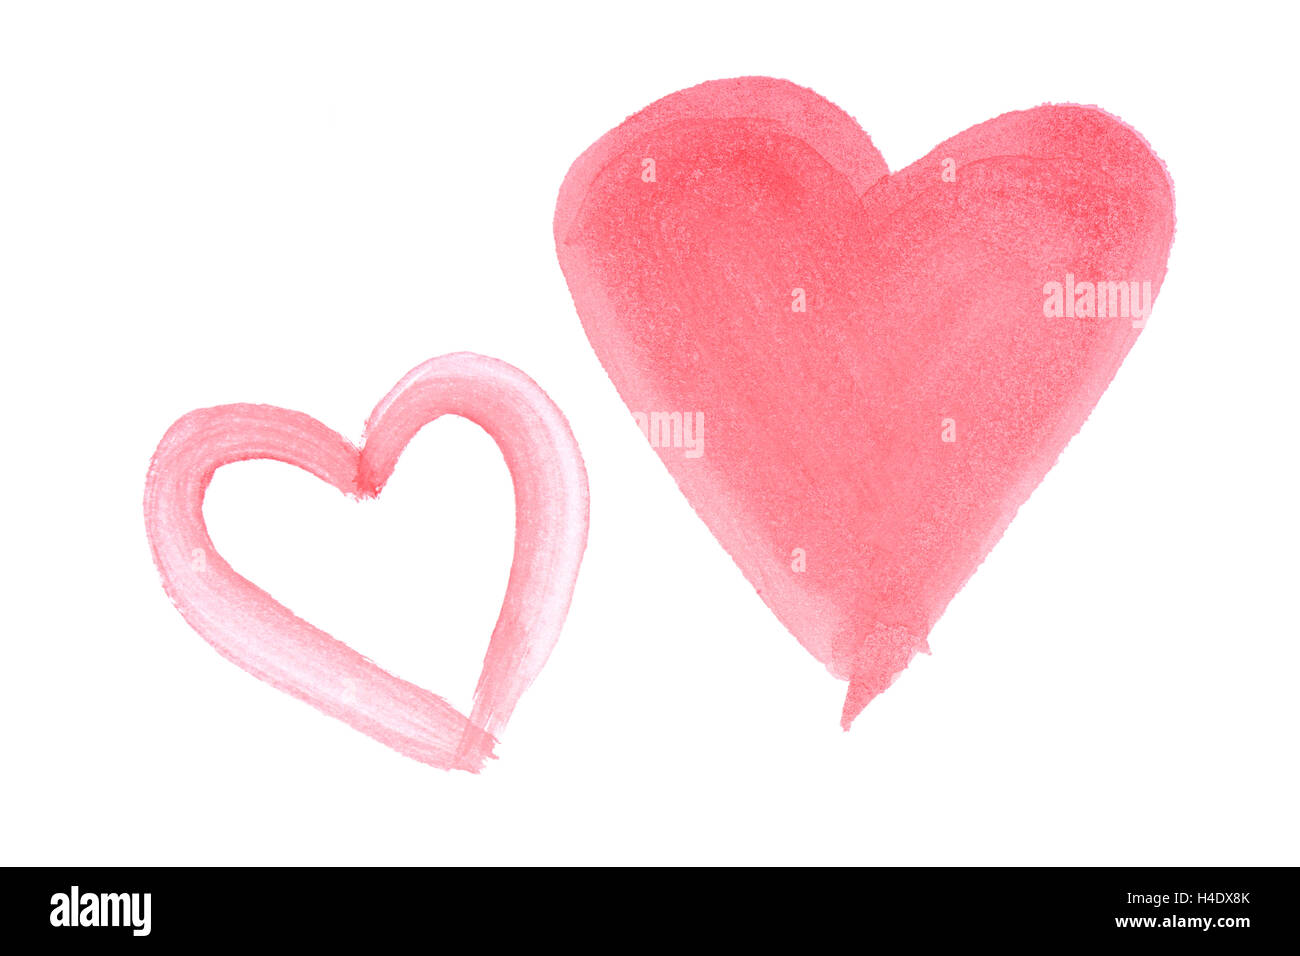 two hand painted red watercolor hearts isolated on white background - Stock Image